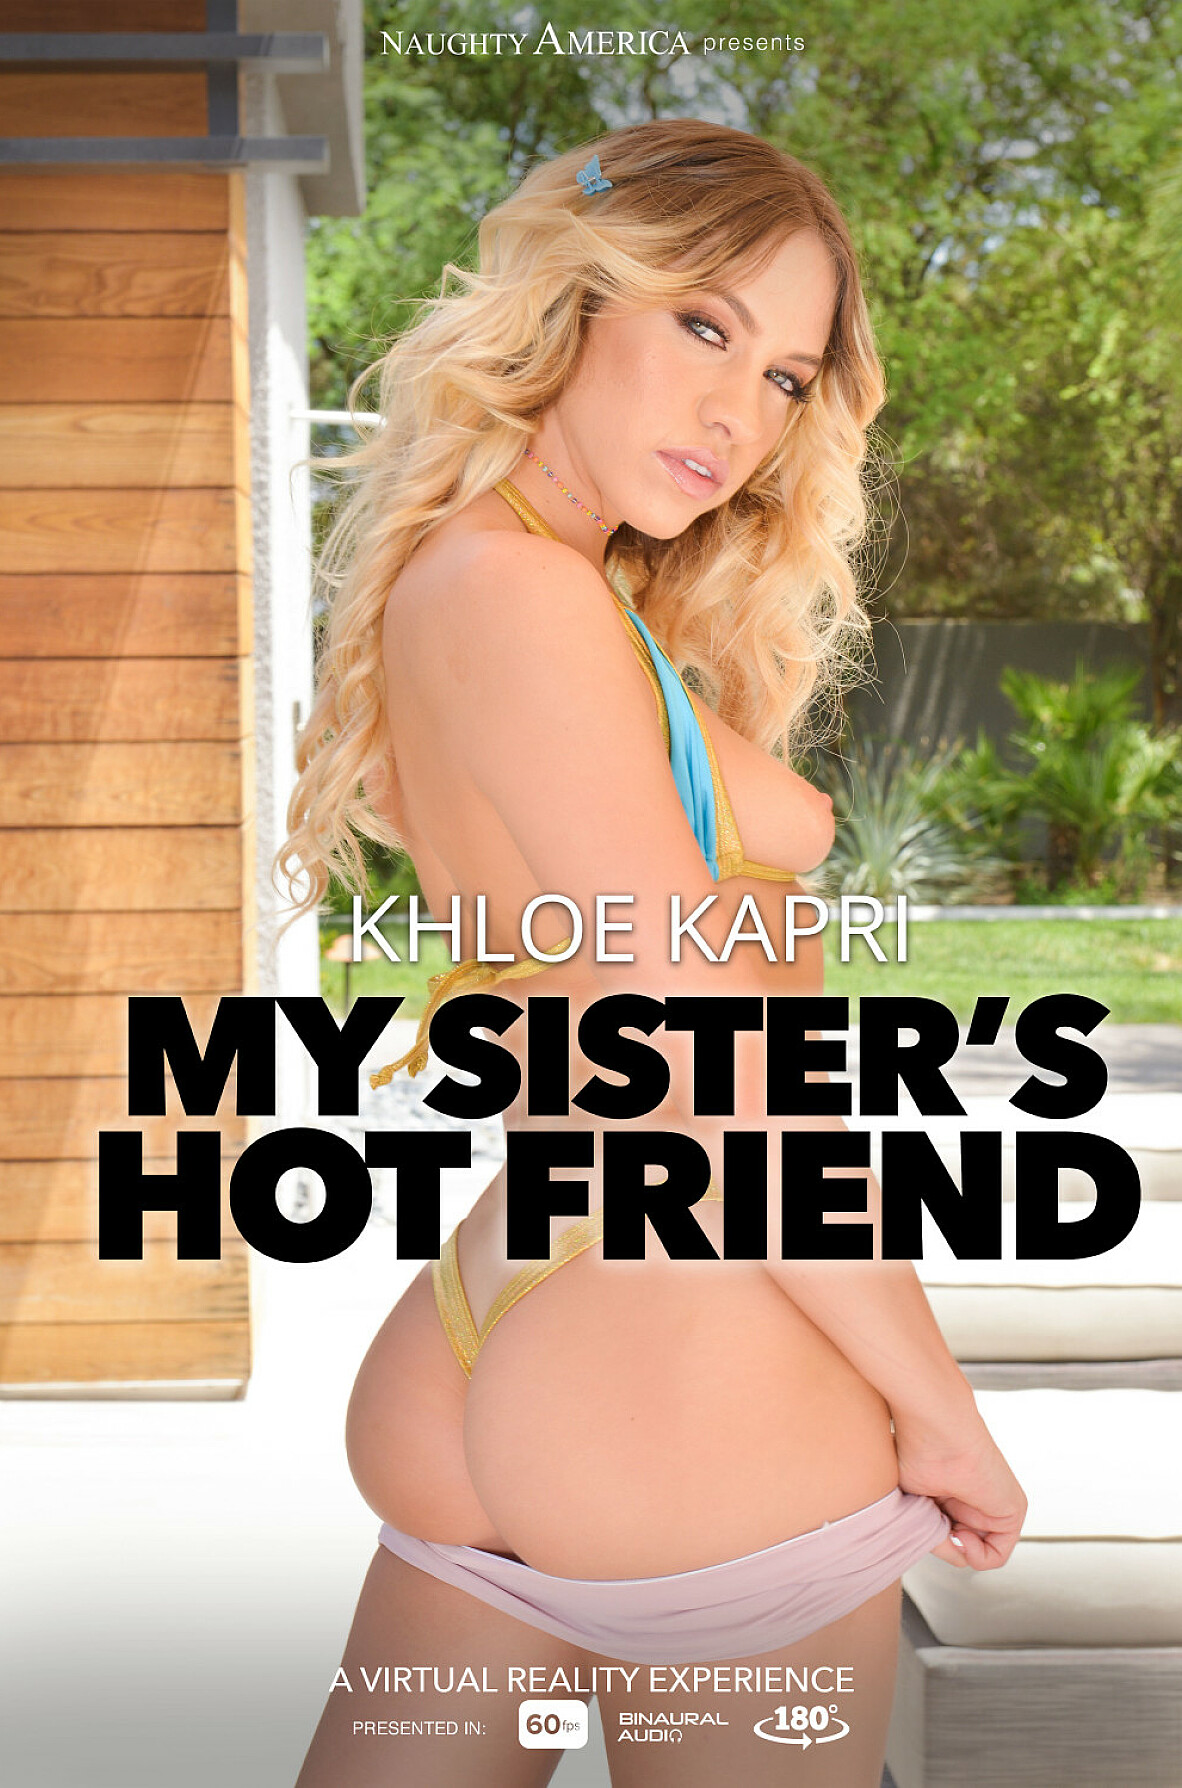 Watch Khloe Kapri VR video in My Sister's Hot Friend